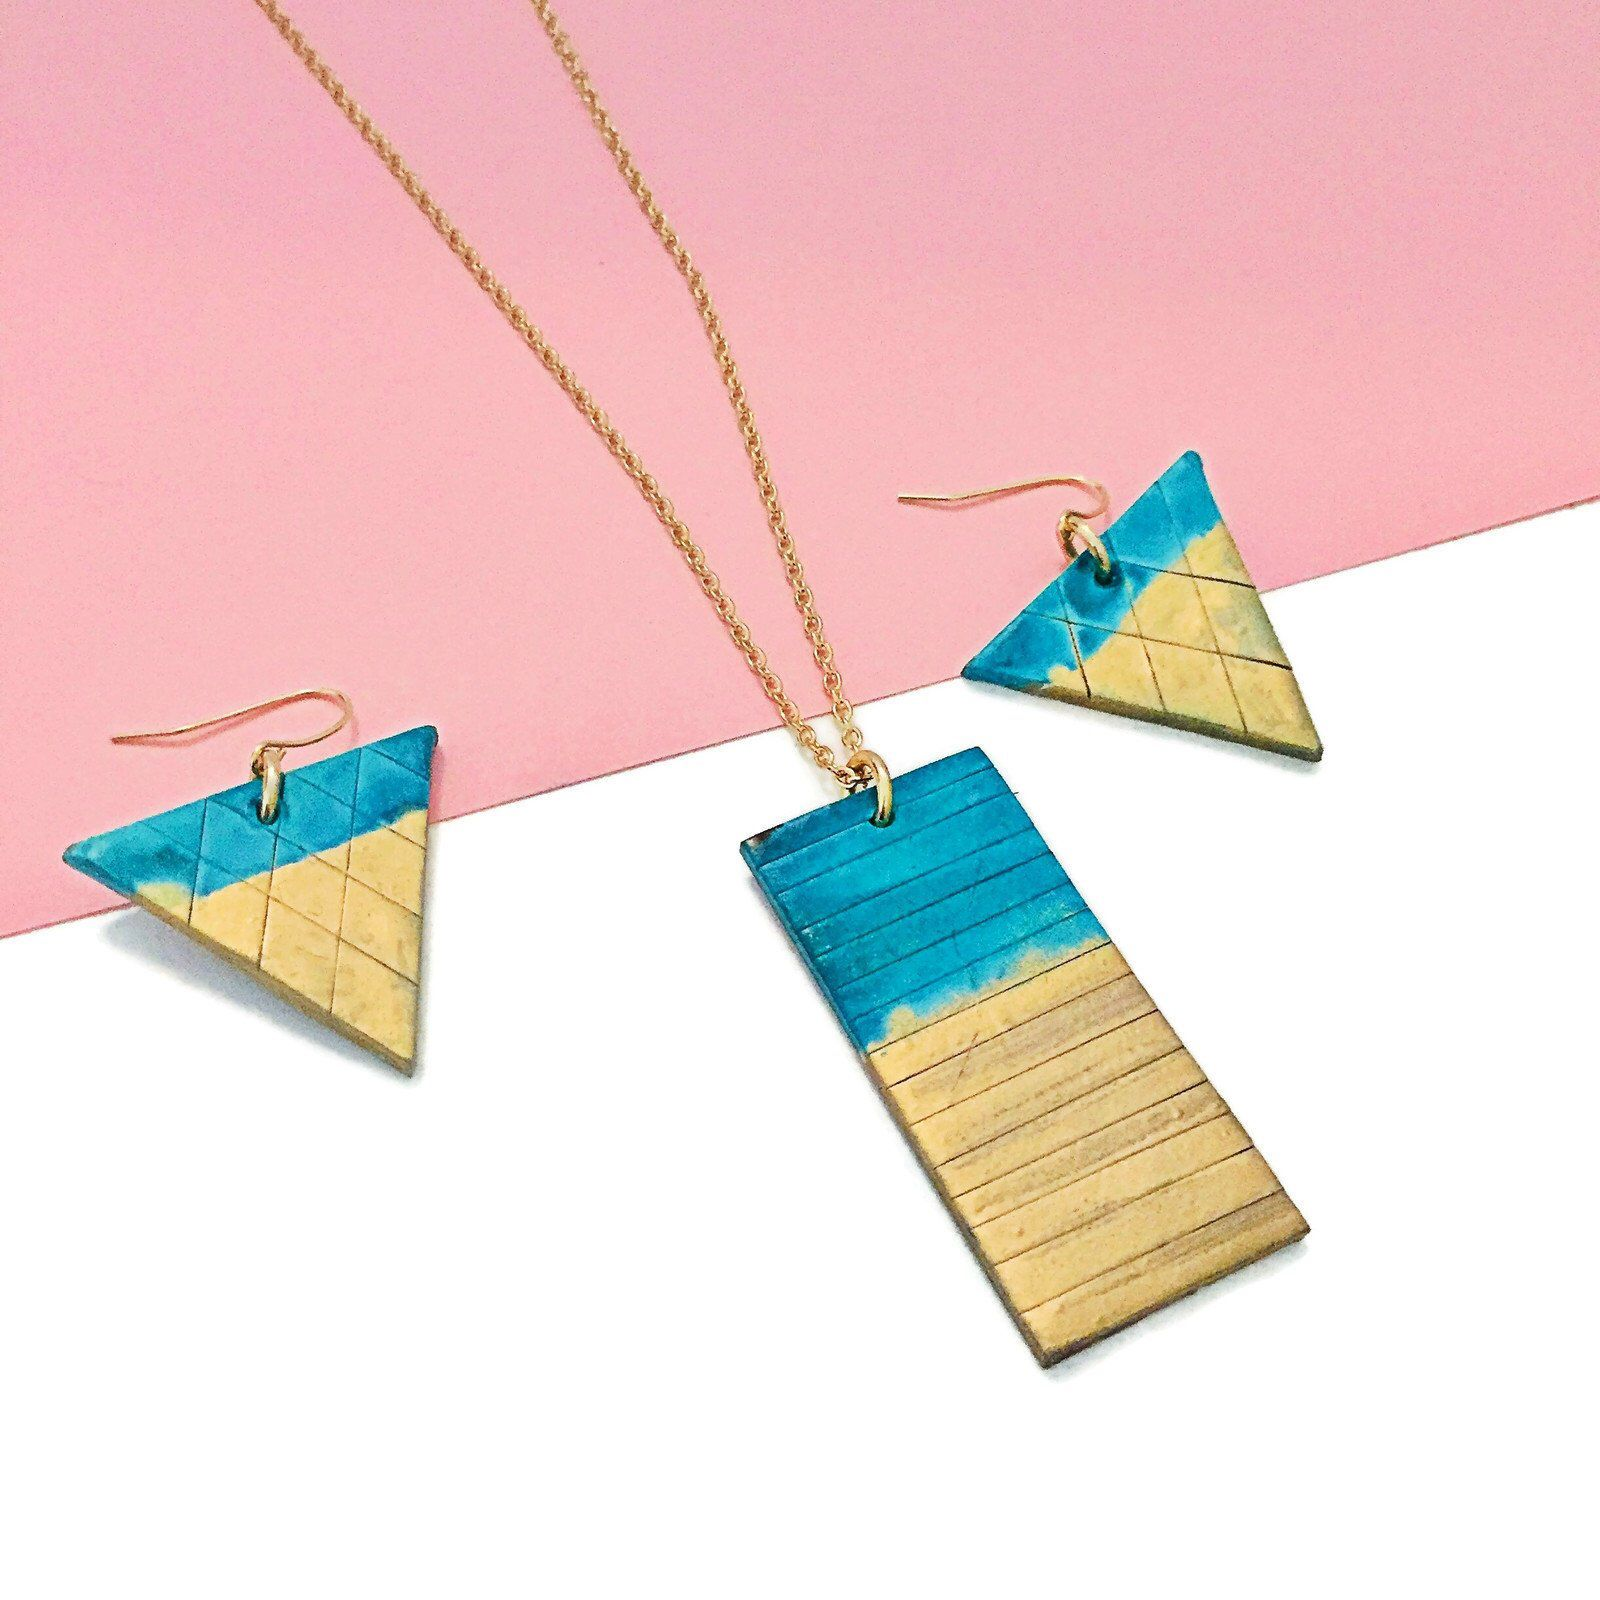 Gold Turquoise Necklace Earring Set | Gold Bar Jewelry Set with Triangle Earrings and Polymer Clay Pendant | Two Tone Painted Earrings